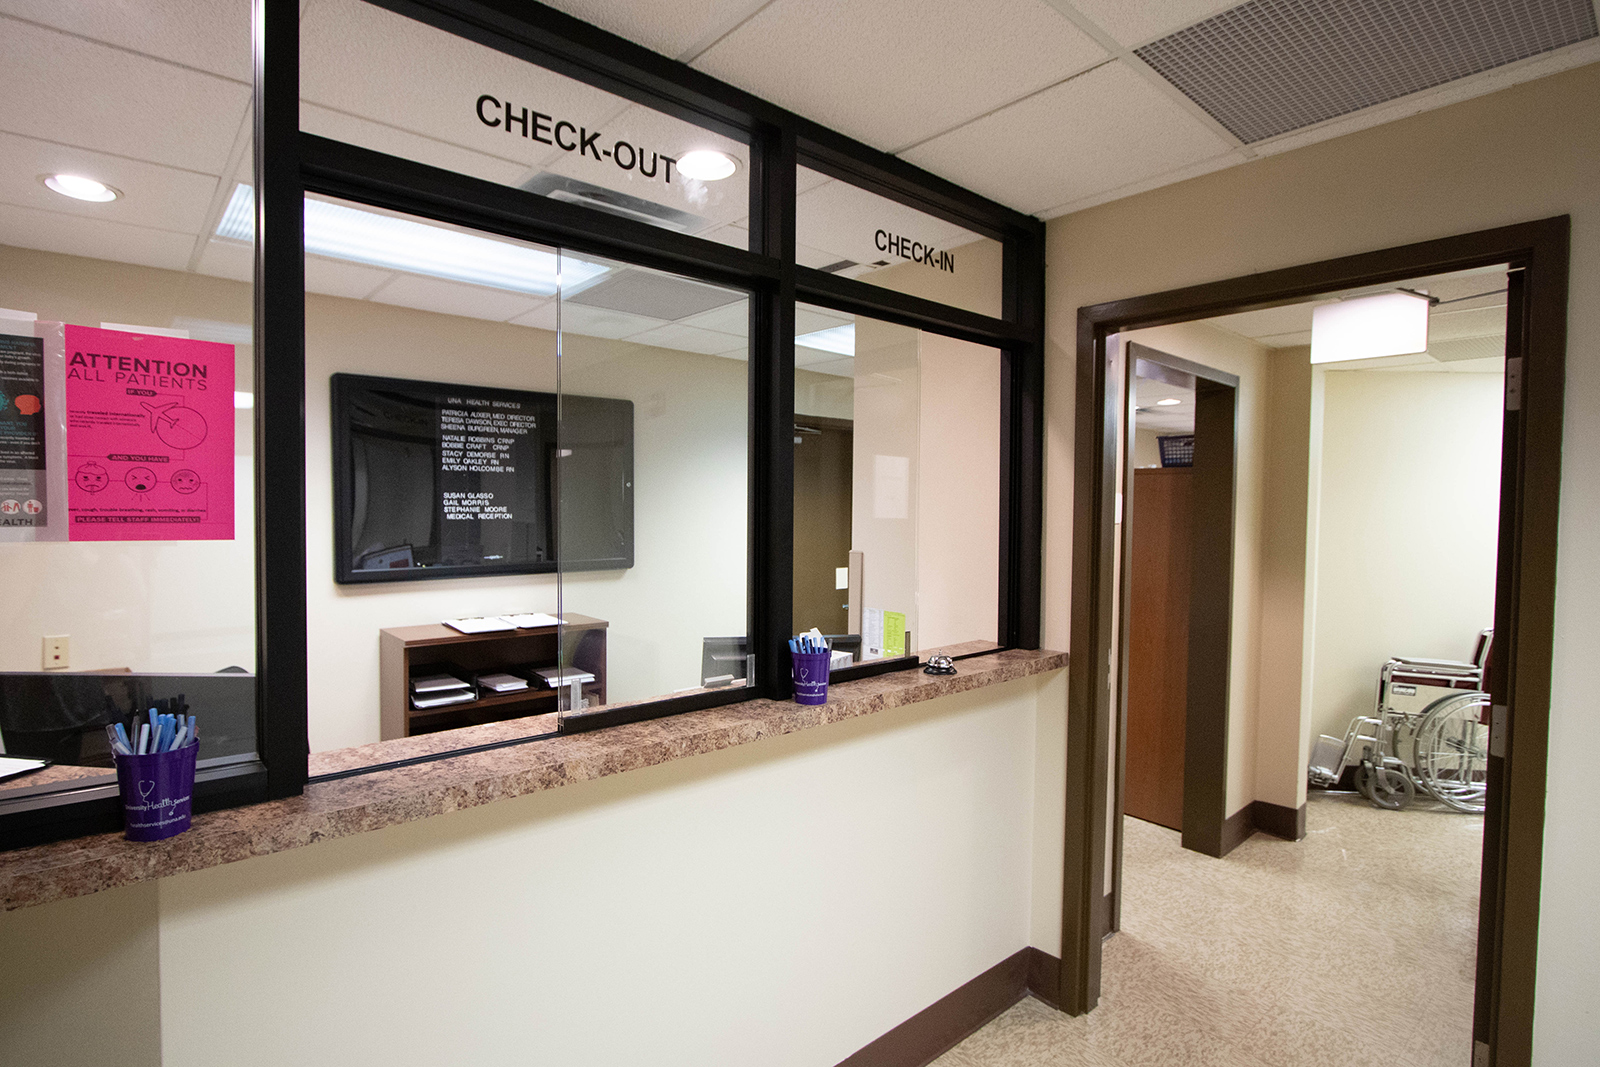 University Health Reception Area